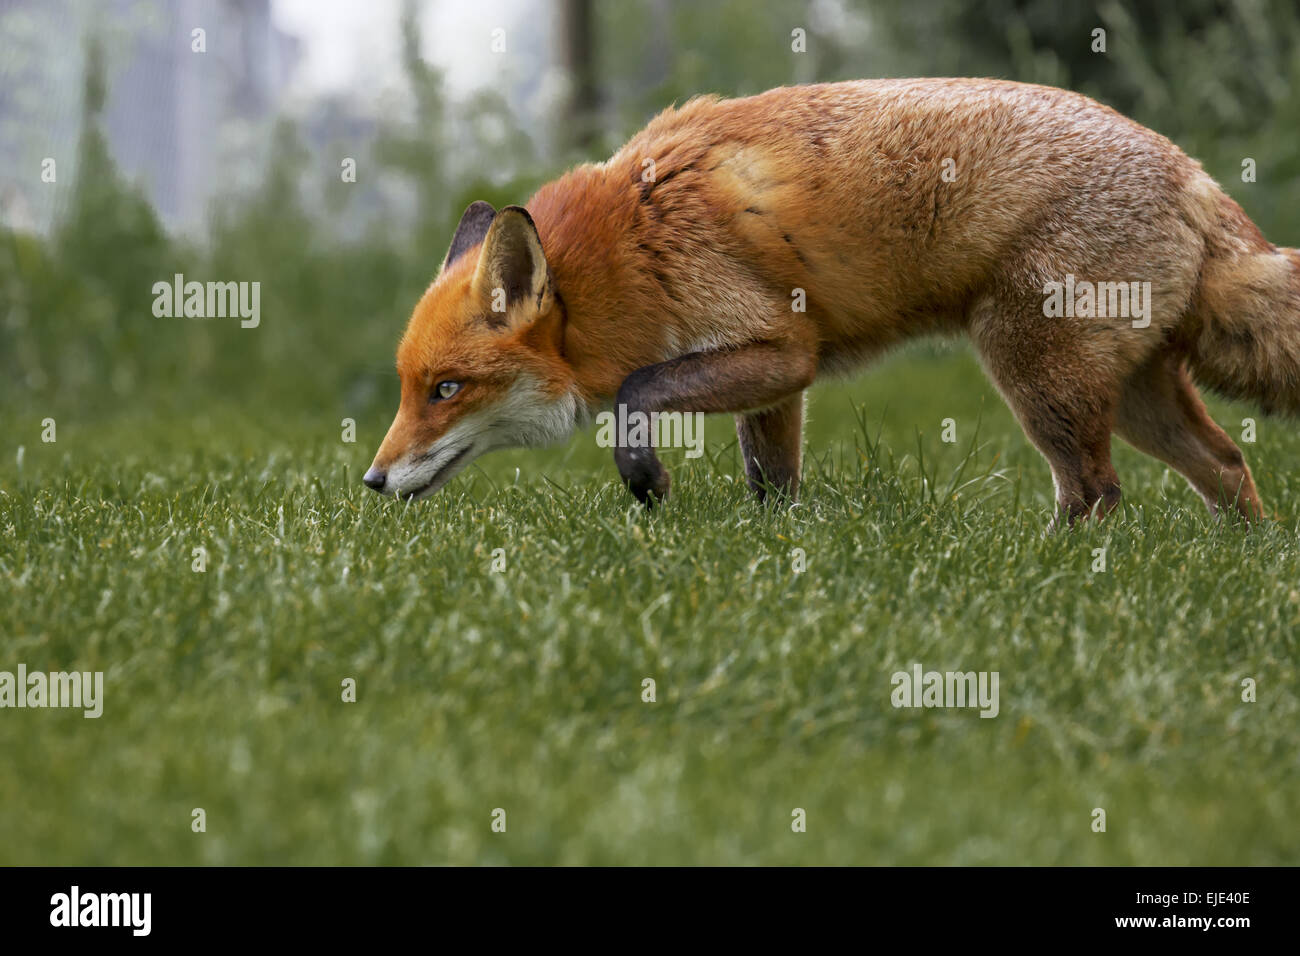 British Red Fox - Stock Image